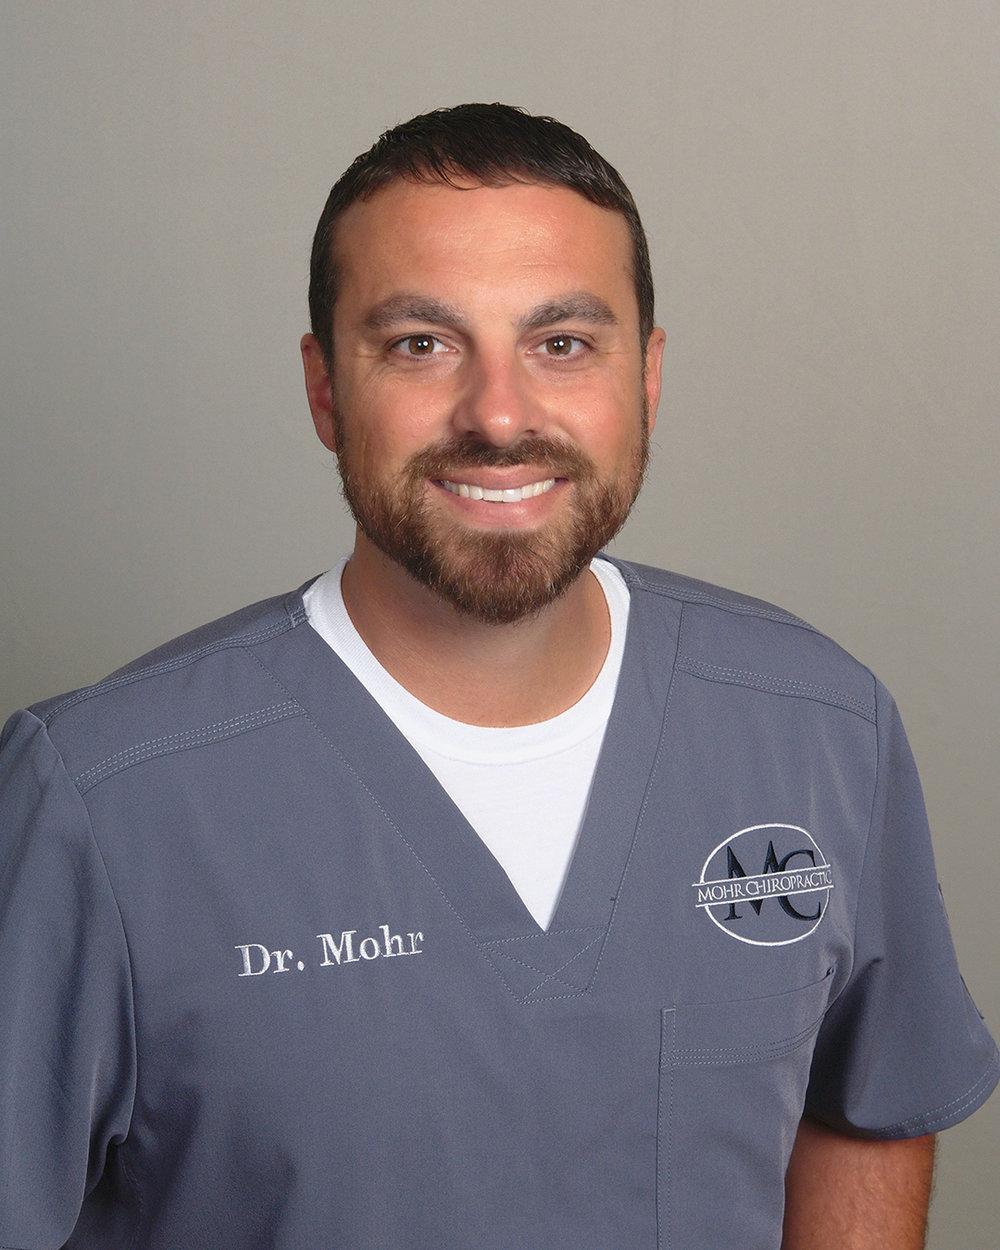 Dr. Justin Mohr - Dr. Justin Mohr is a second generation chiropractor. He has been a chiropractic patient his entire life so he knows firsthand what it is like to be the patient and the provider. Dr. Mohr grew up in Brazil, Indiana and always knew that chiropractic was the career path he wanted to take. Dr. Mohr graduated from Northview High School and then attended Indiana State University for his pre-chiropractic coursework and also received a bachelor's degree in psychology. Upon graduation, Dr. Mohr attended Logan College of Chiropractic where he was able to earn a second bachelor's degree in life science in route to completing the rigorous coursework and training to becoming a Doctor of Chiropractic. Dr. Mohr graduated from Logan College of Chiropractic in December of 2007. Dr. Mohr is board certified in chiropractic and physiotherapy. He is a member of the Avon Chamber of Commerce, the Indiana State Chiropractic Association, the Logan College Alumni Association, Integrity Doctors, and Harvest Bible Chapel in Avon. Dr. Mohr enjoys spending time with his family, being outdoors, and traveling.Dr. Justin specializes in helping his patients treat their headaches and low back pain through the use of Chiropractic care as well as home management.